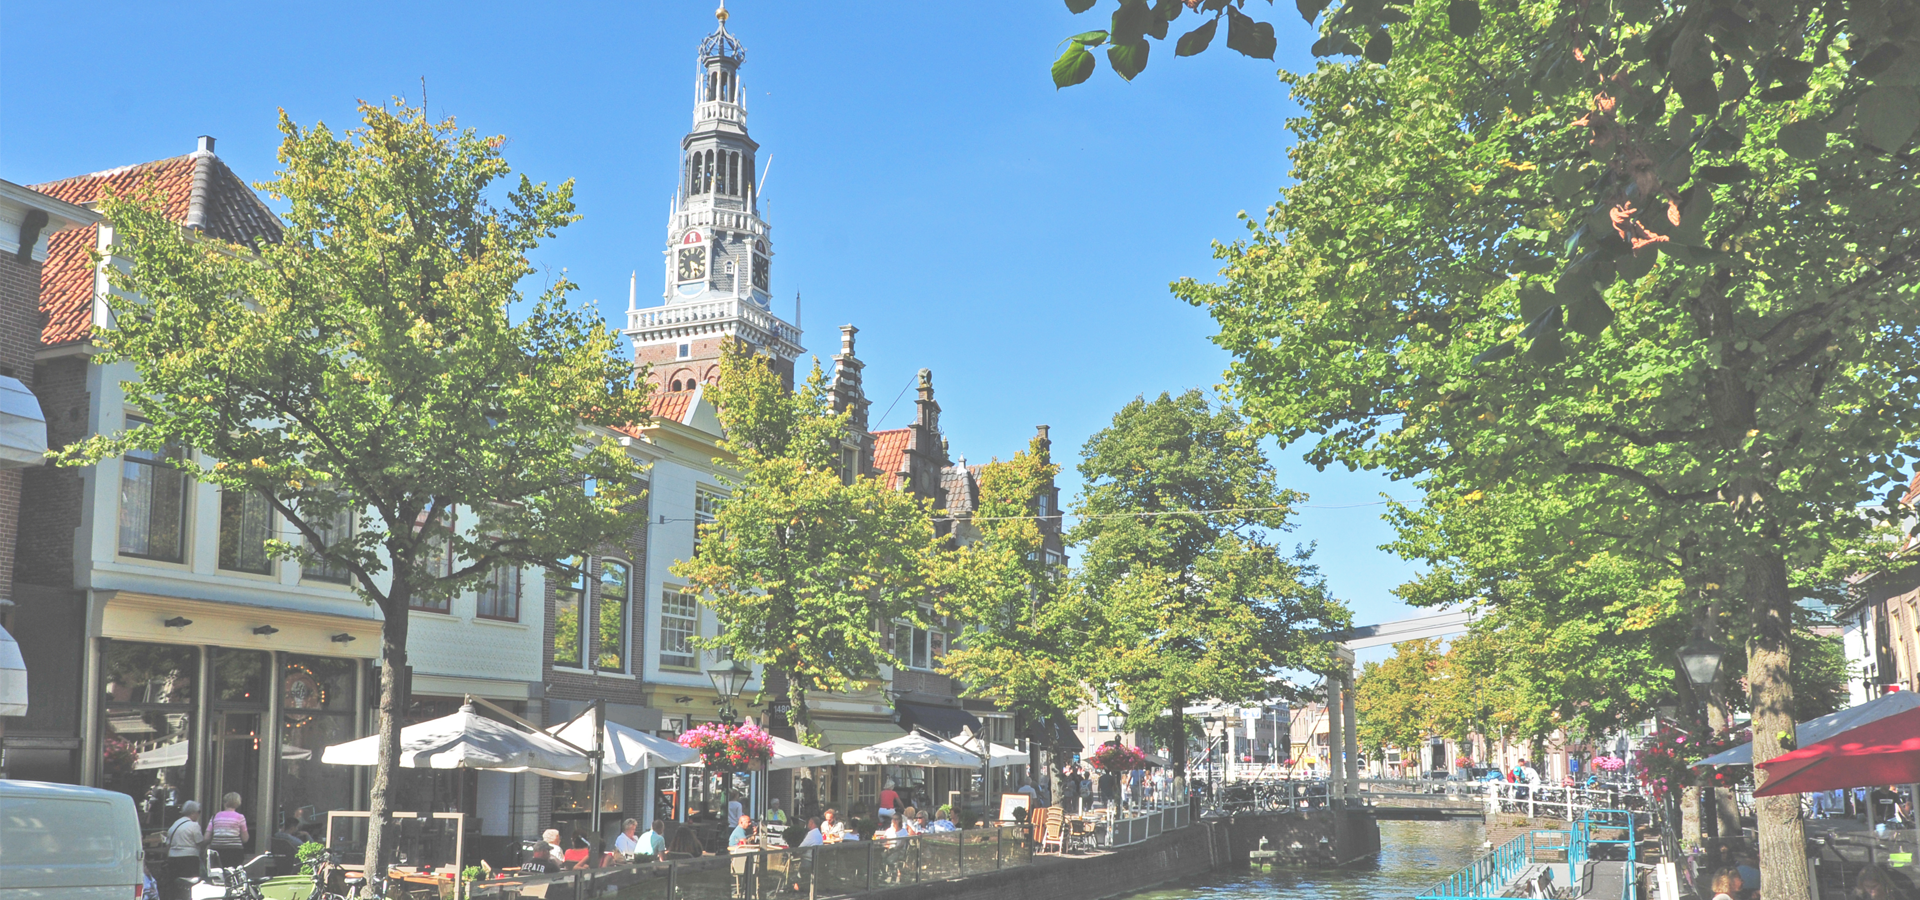 Peer-to-peer advisory in The Hague, South Holland, Netherlands